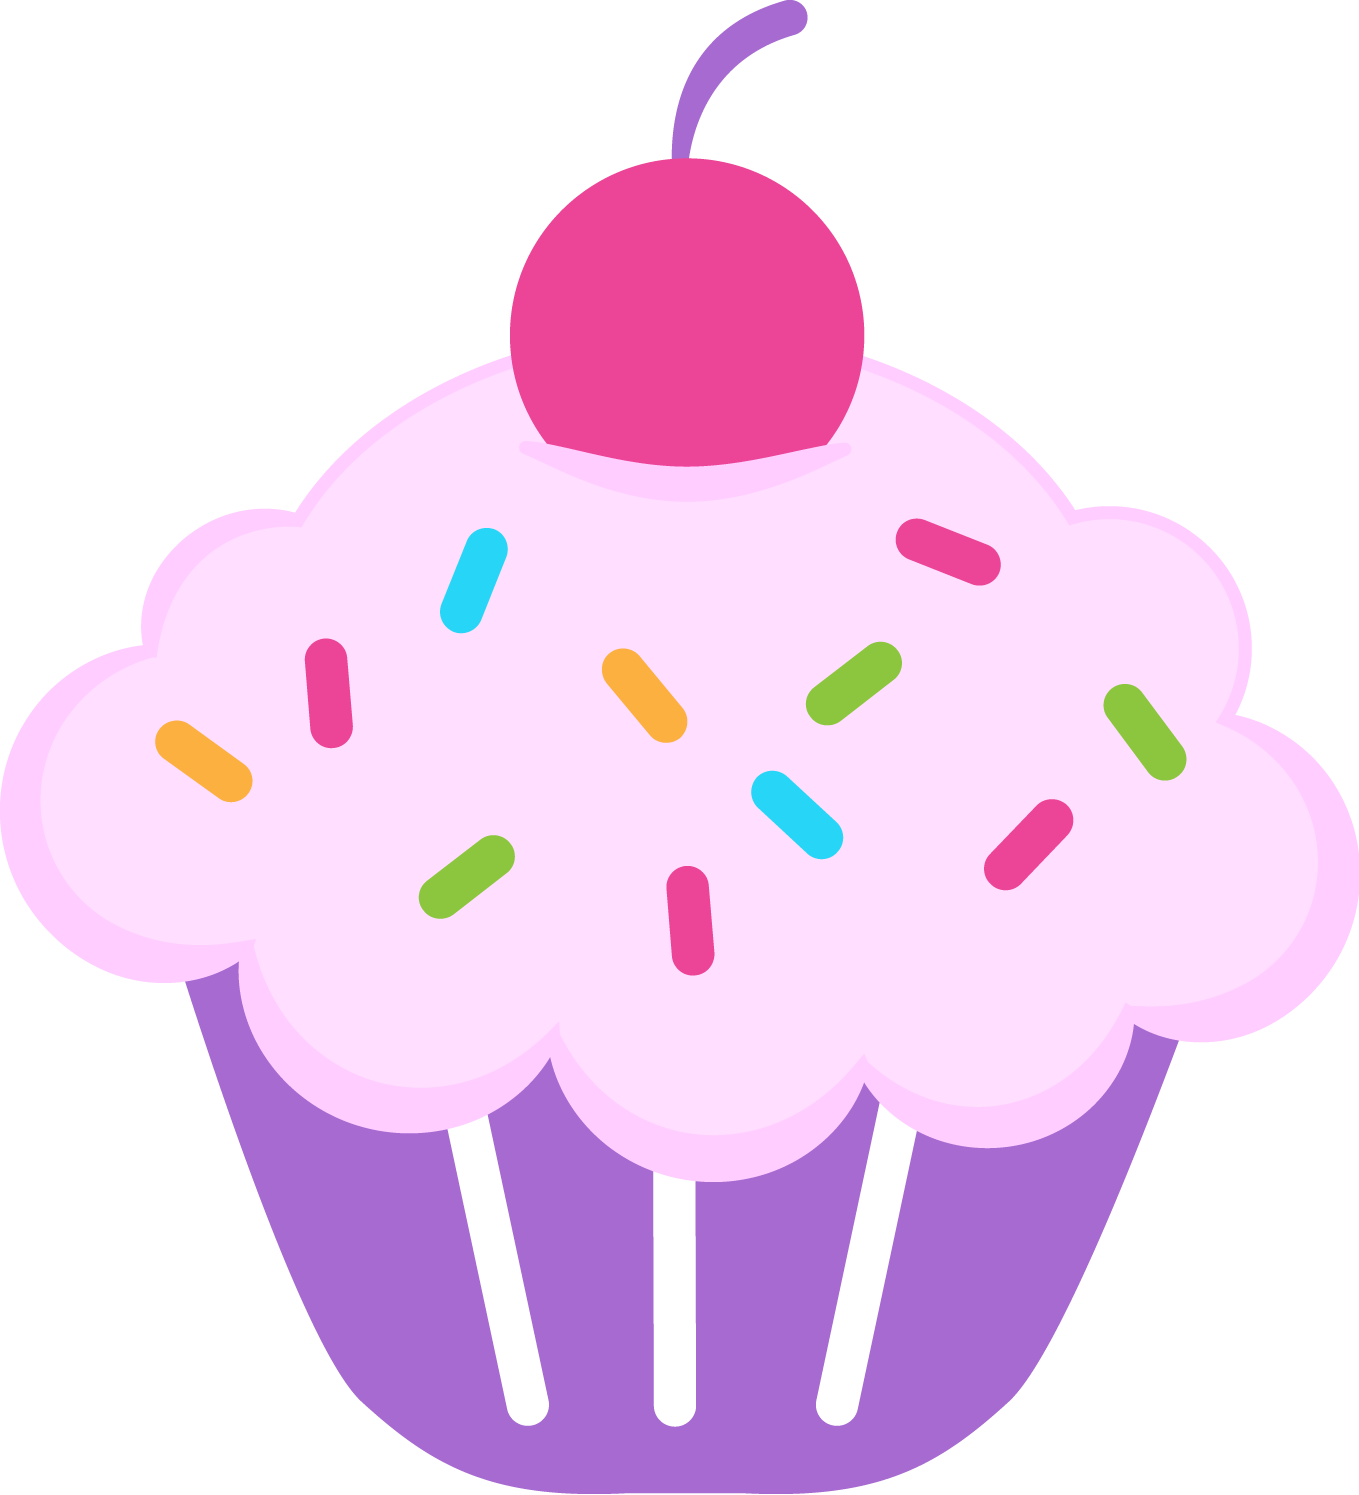 Cake stall clipart graphic library Fundraising clipart cake stall, Fundraising cake stall Transparent ... graphic library